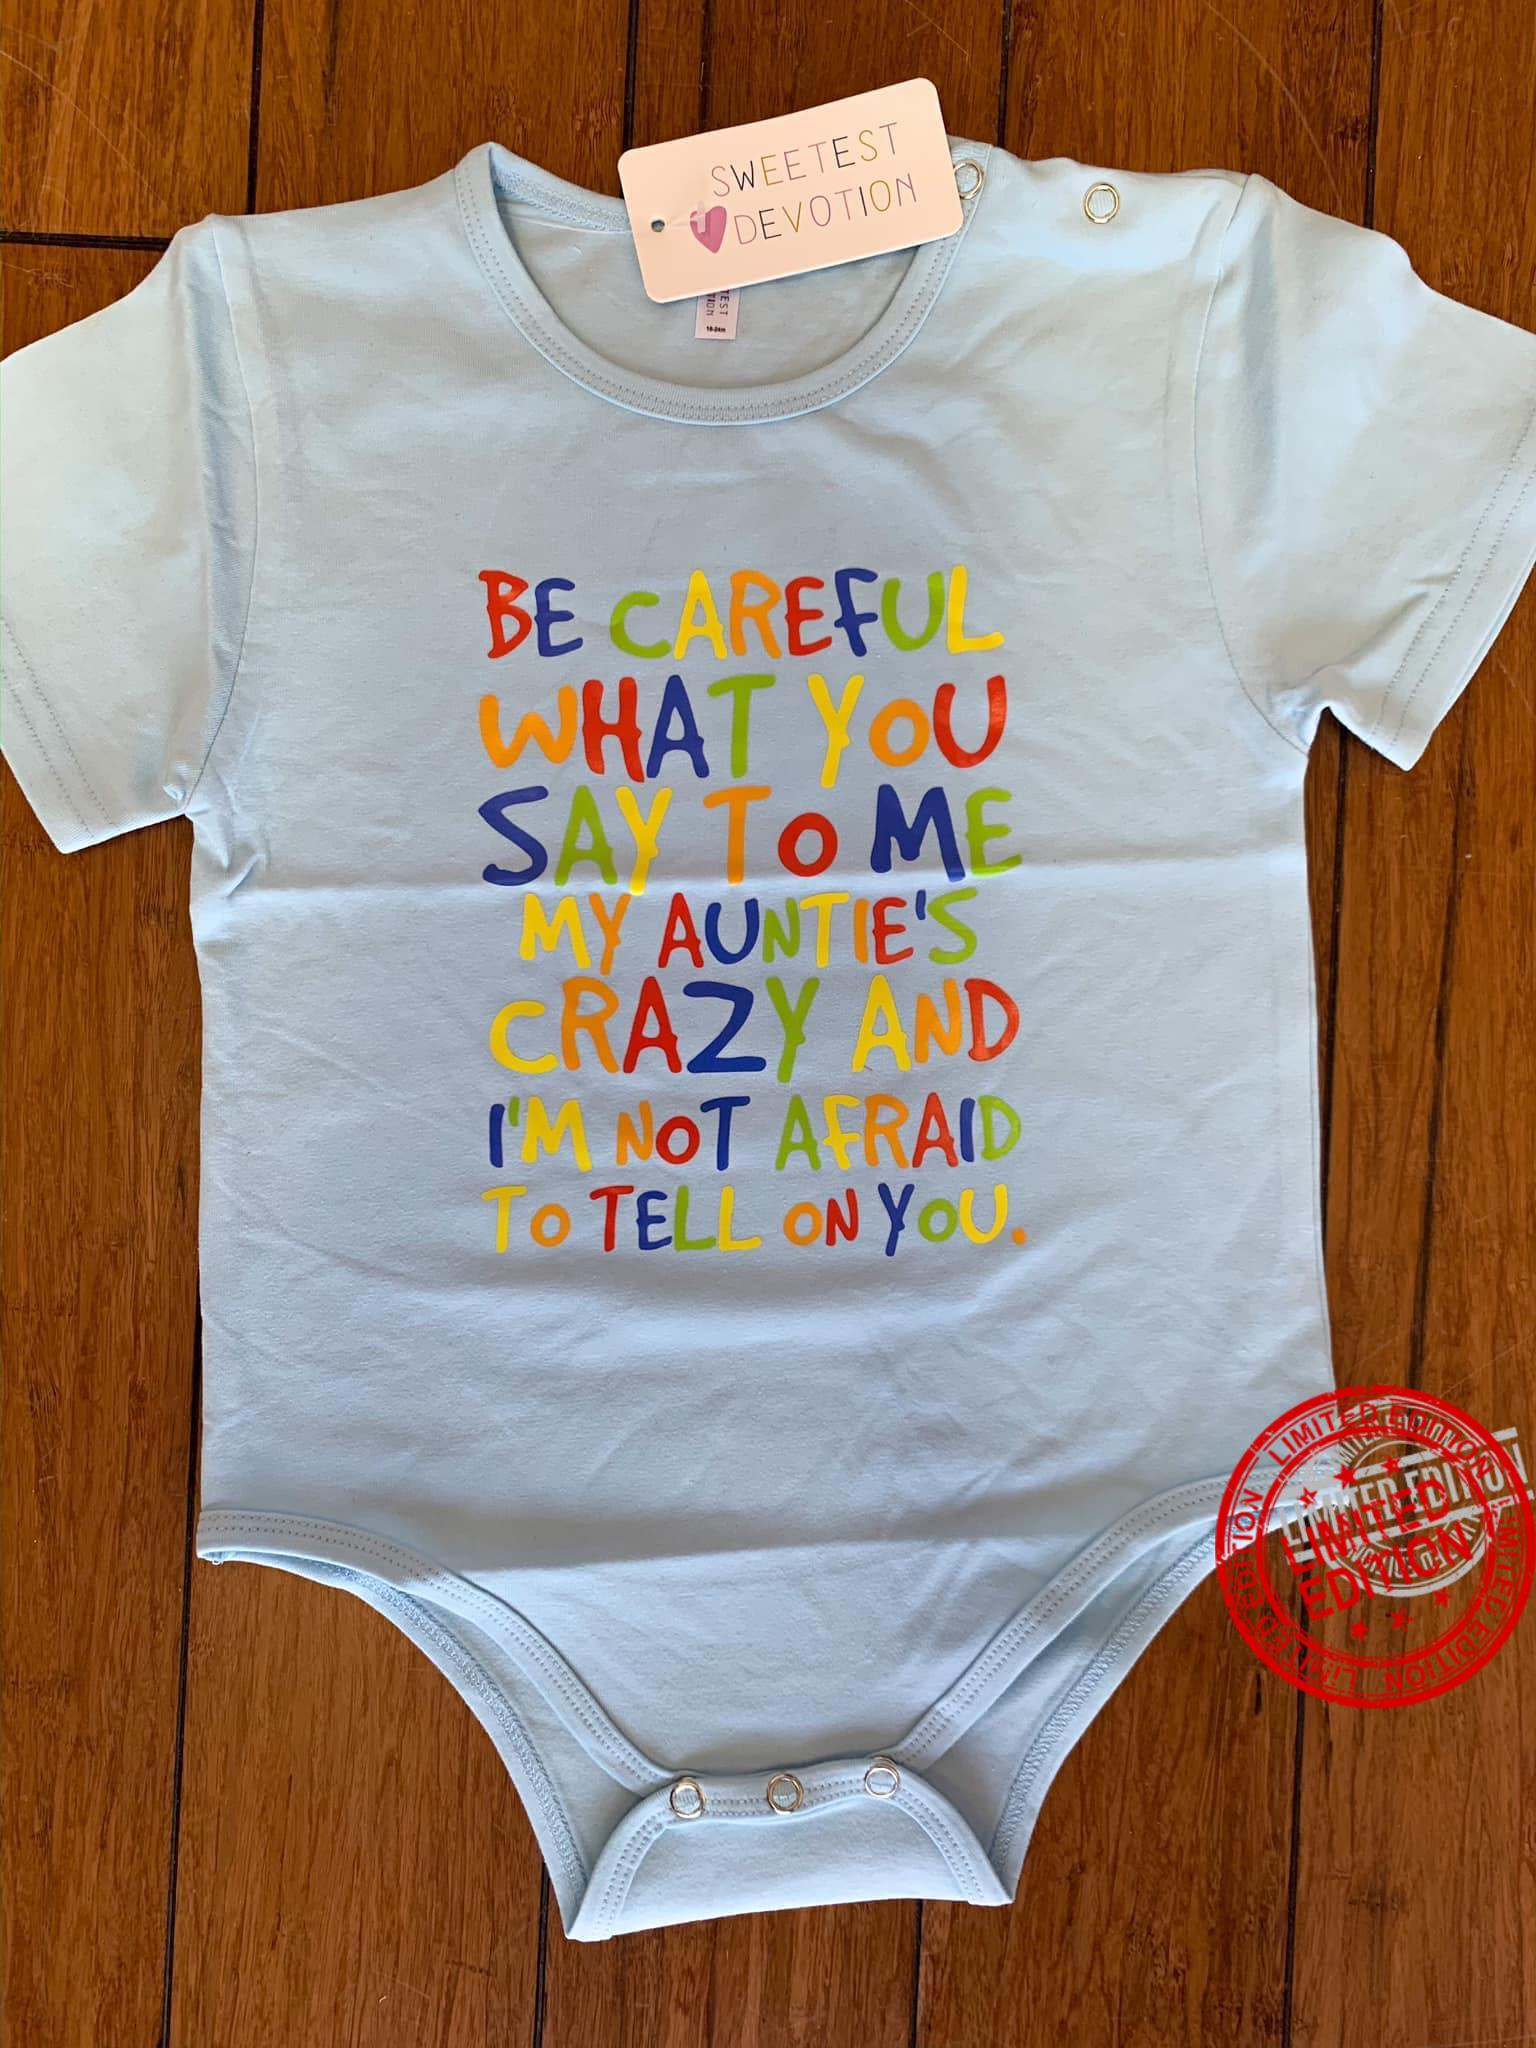 Be Careful What You Say To Me My Auntie's Crazy And I'm Not Afraid To Tell On You Shirt